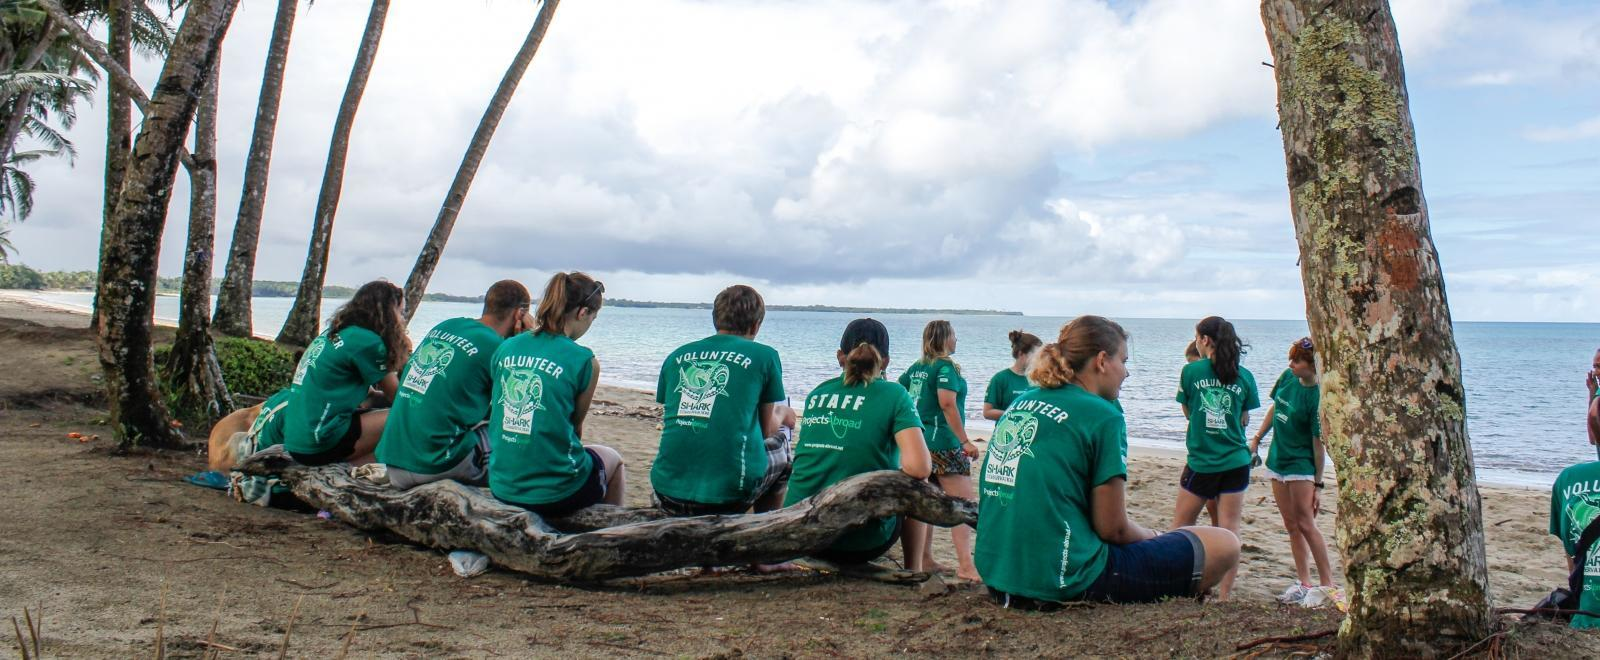 Projects Abroad volunteers in Fiji take a break after a beach clean-up.